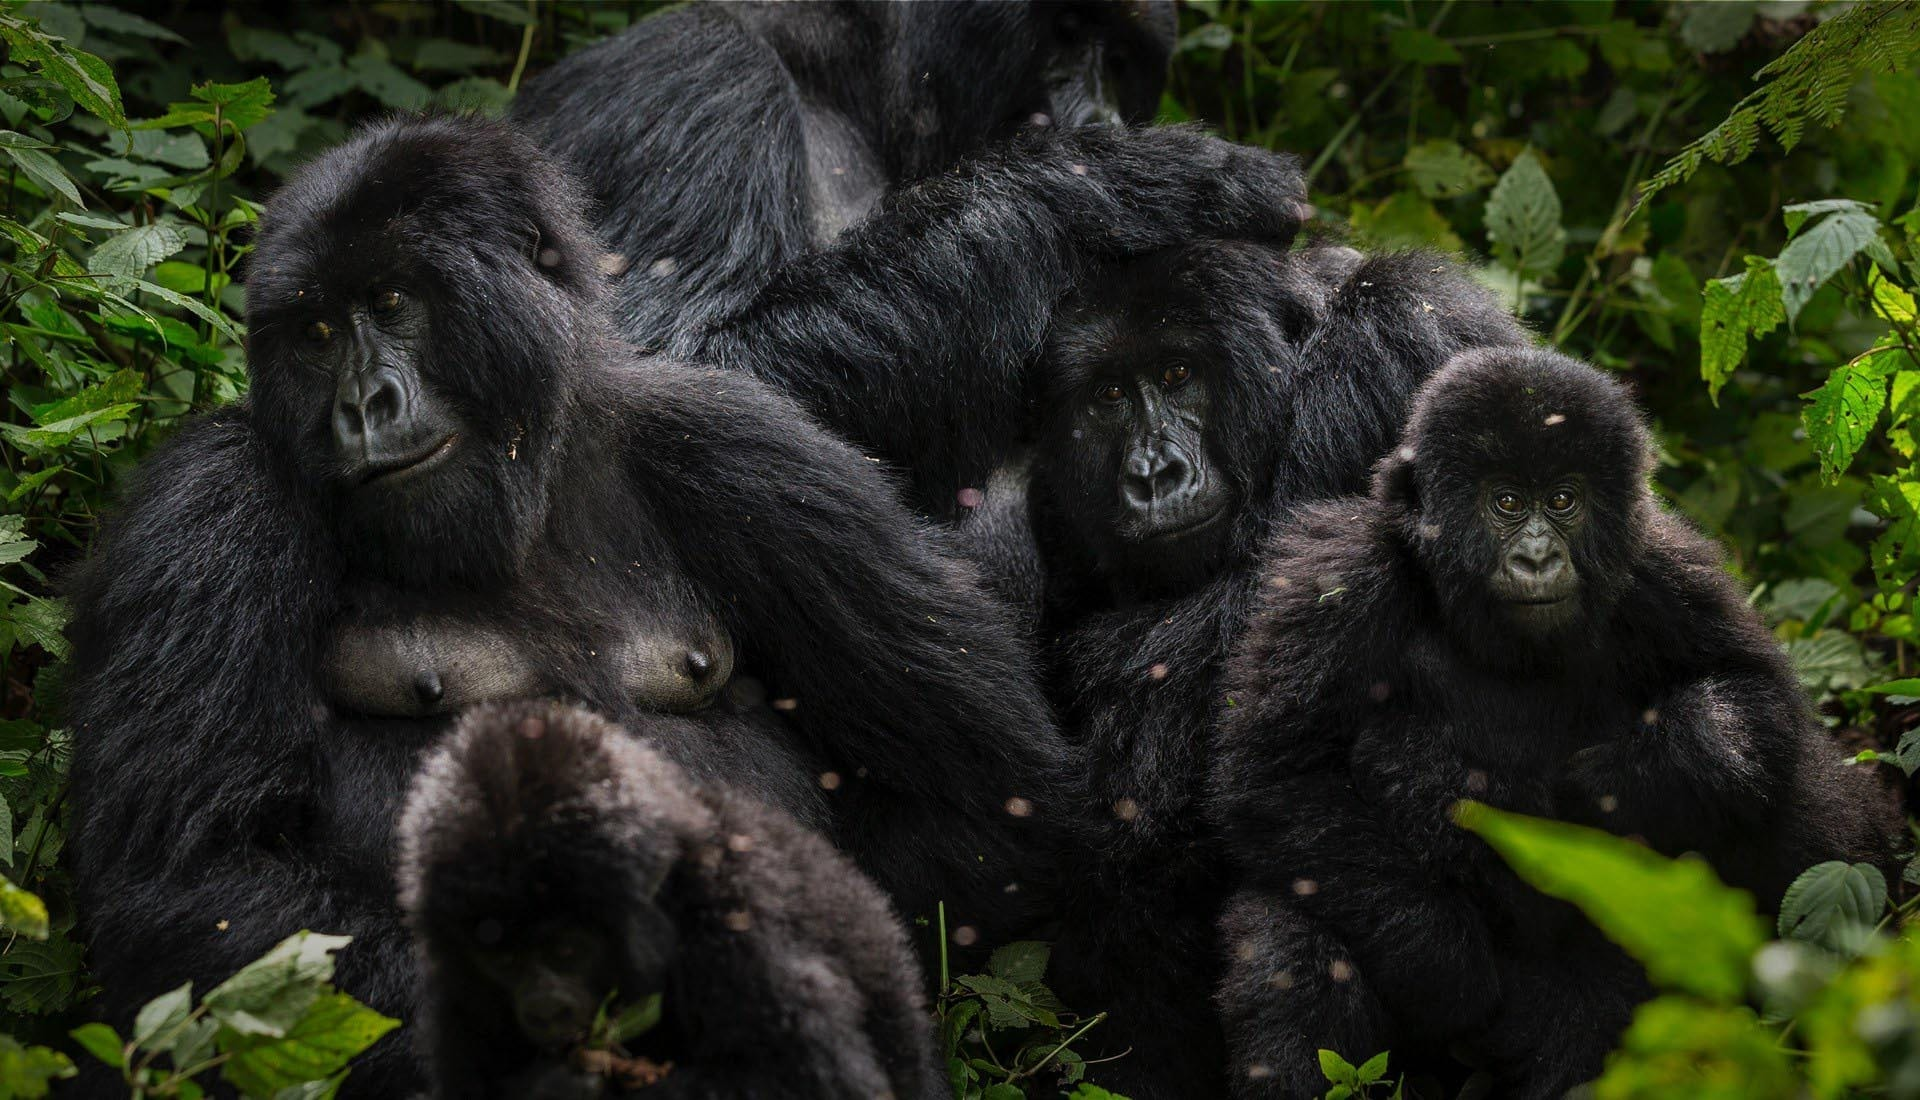 Photo of mountain gorilla family taken by Brent Stirton